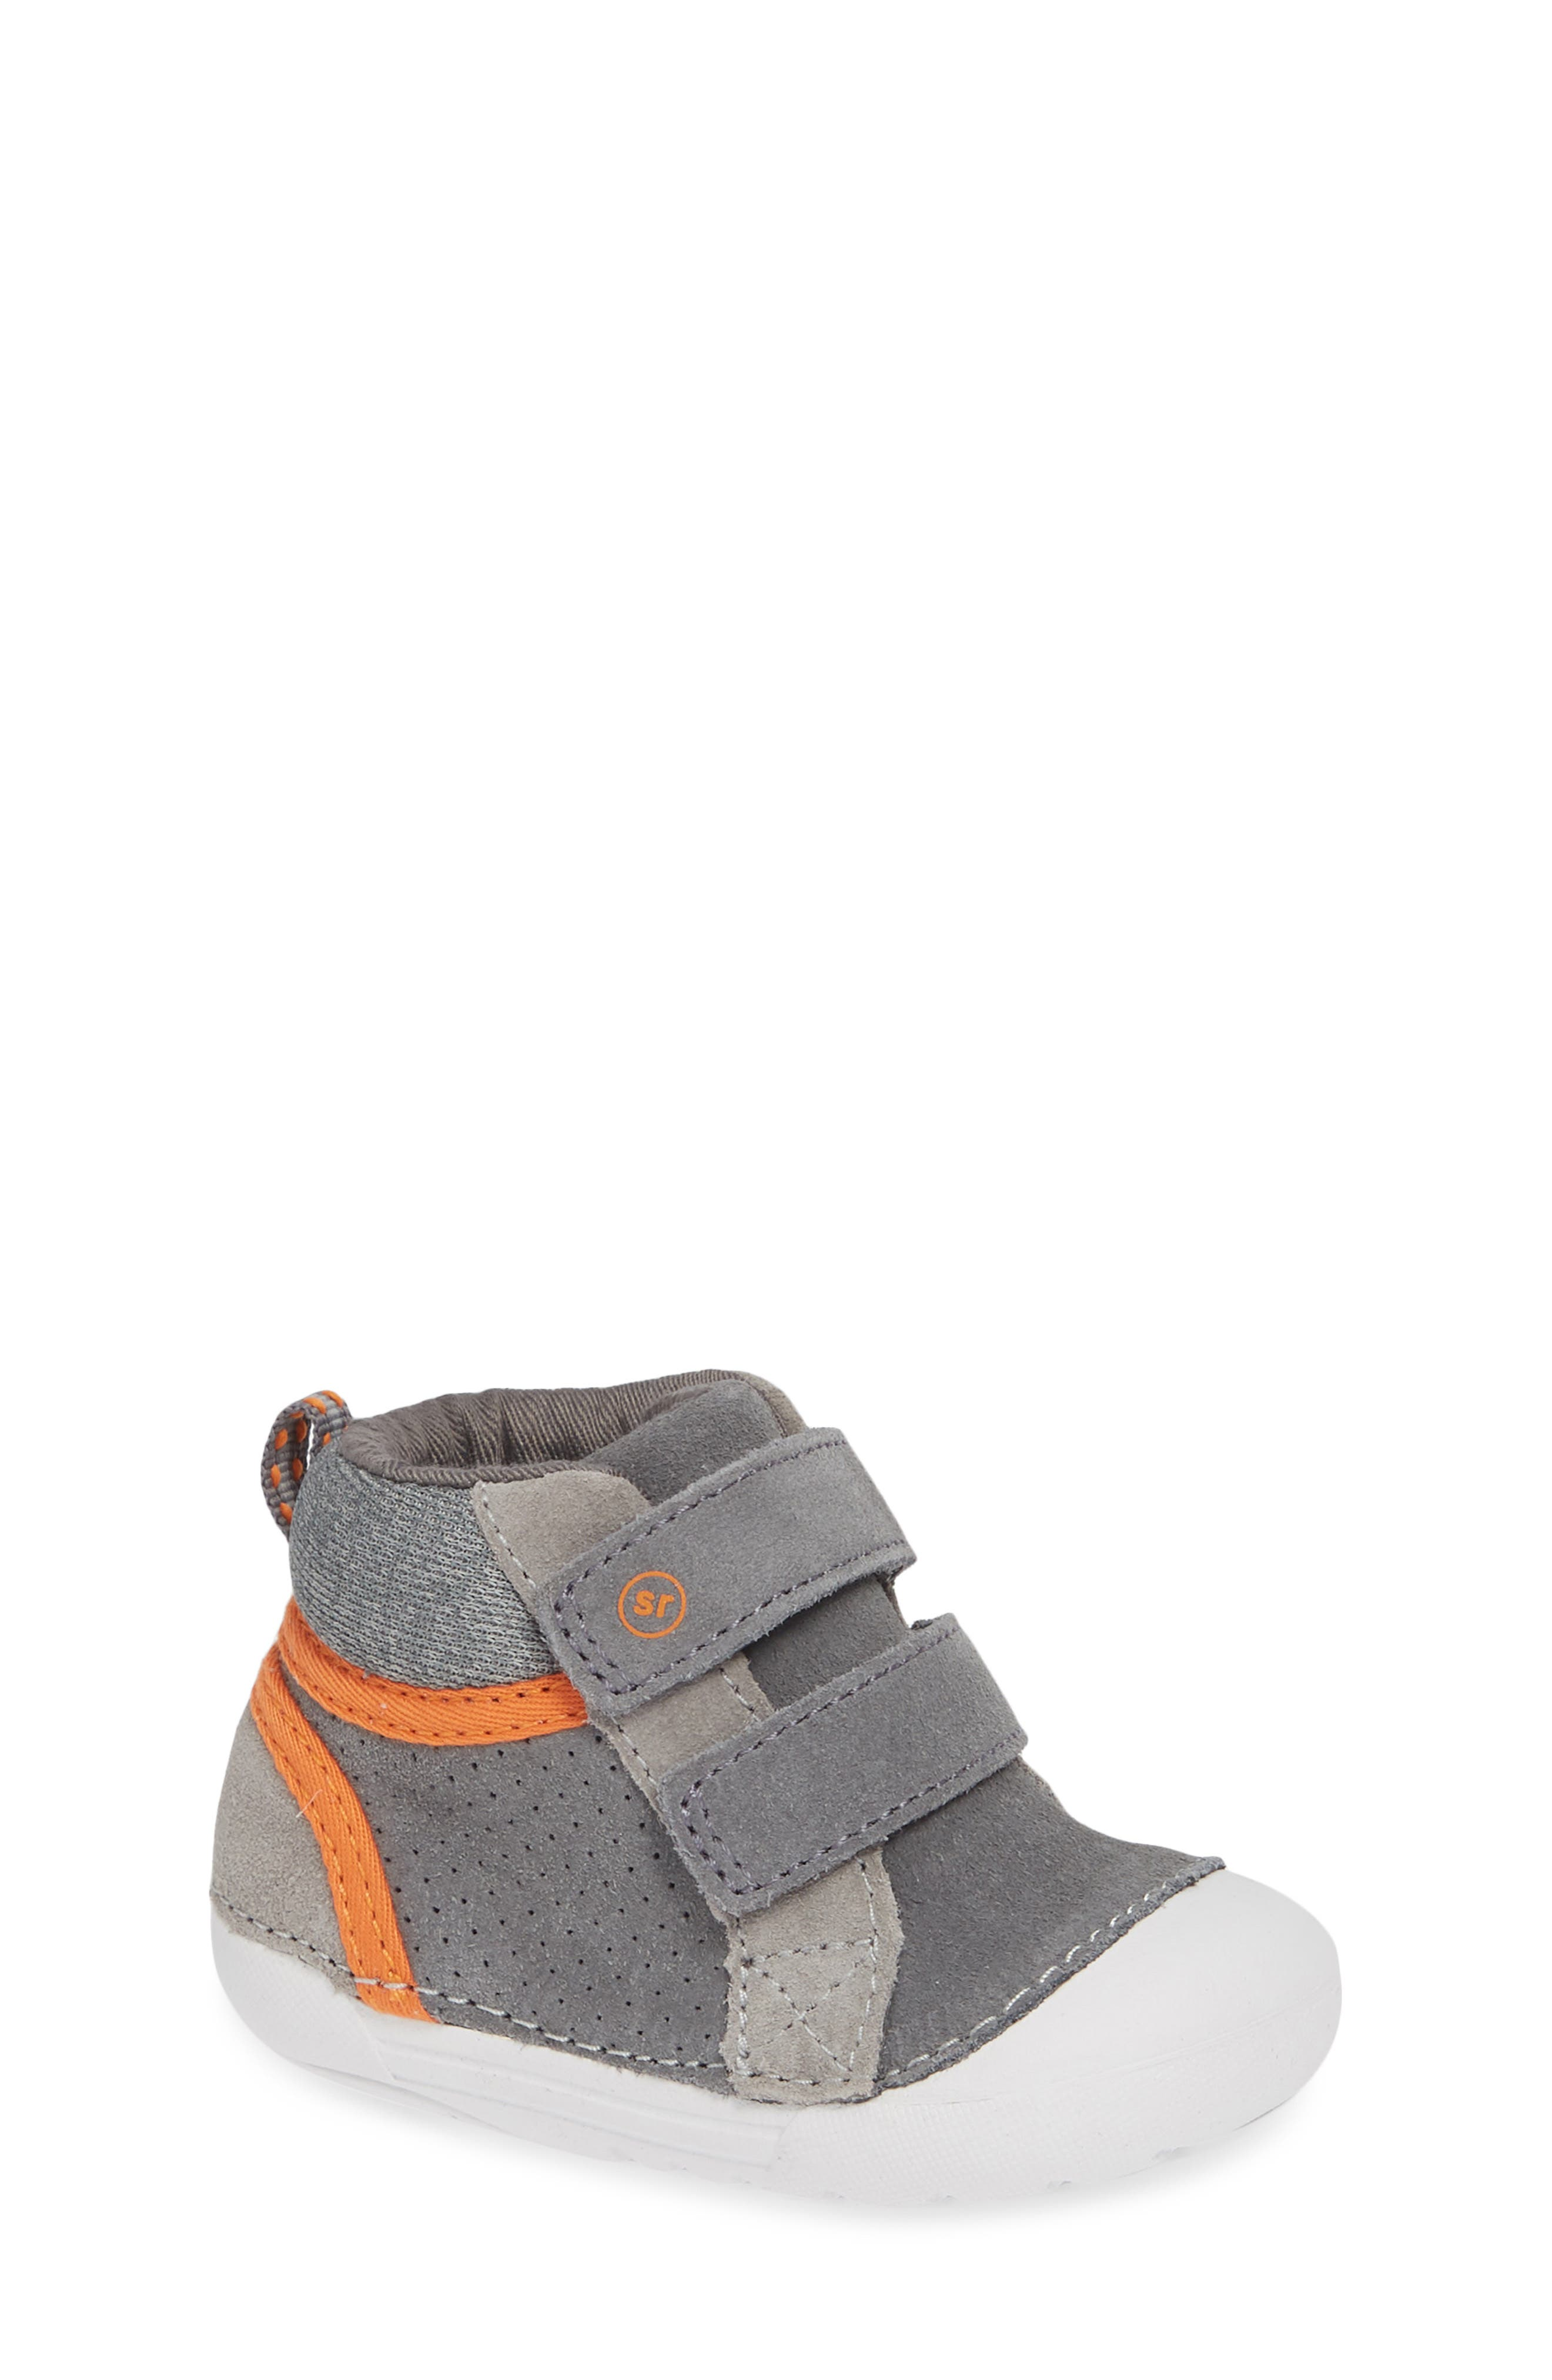 Soft Motion<sup>™</sup> Milo High Top Sneaker,                         Main,                         color, GREY